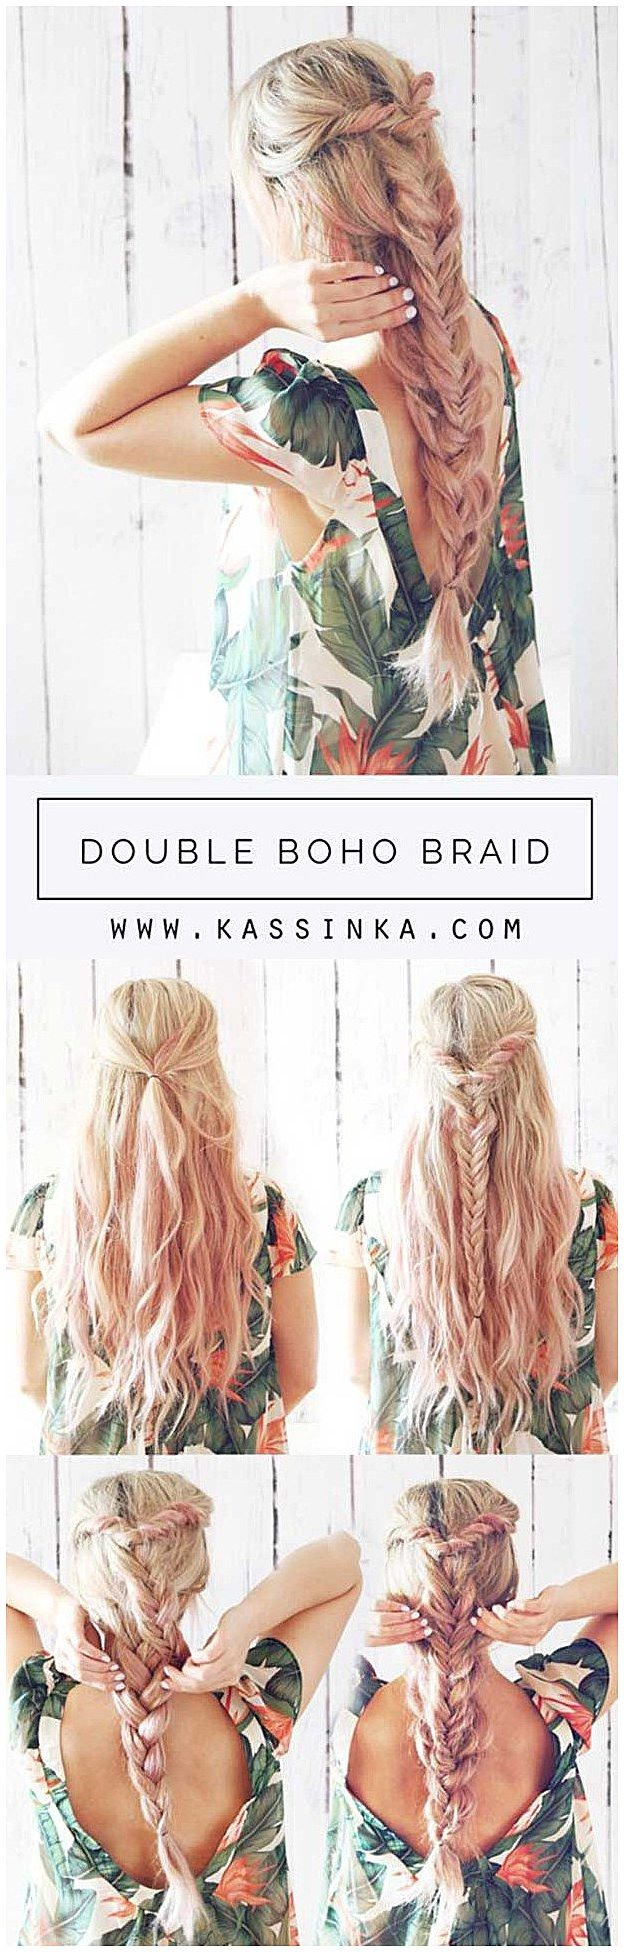 Best hairstyles for summer double boho braid tutorial easy and